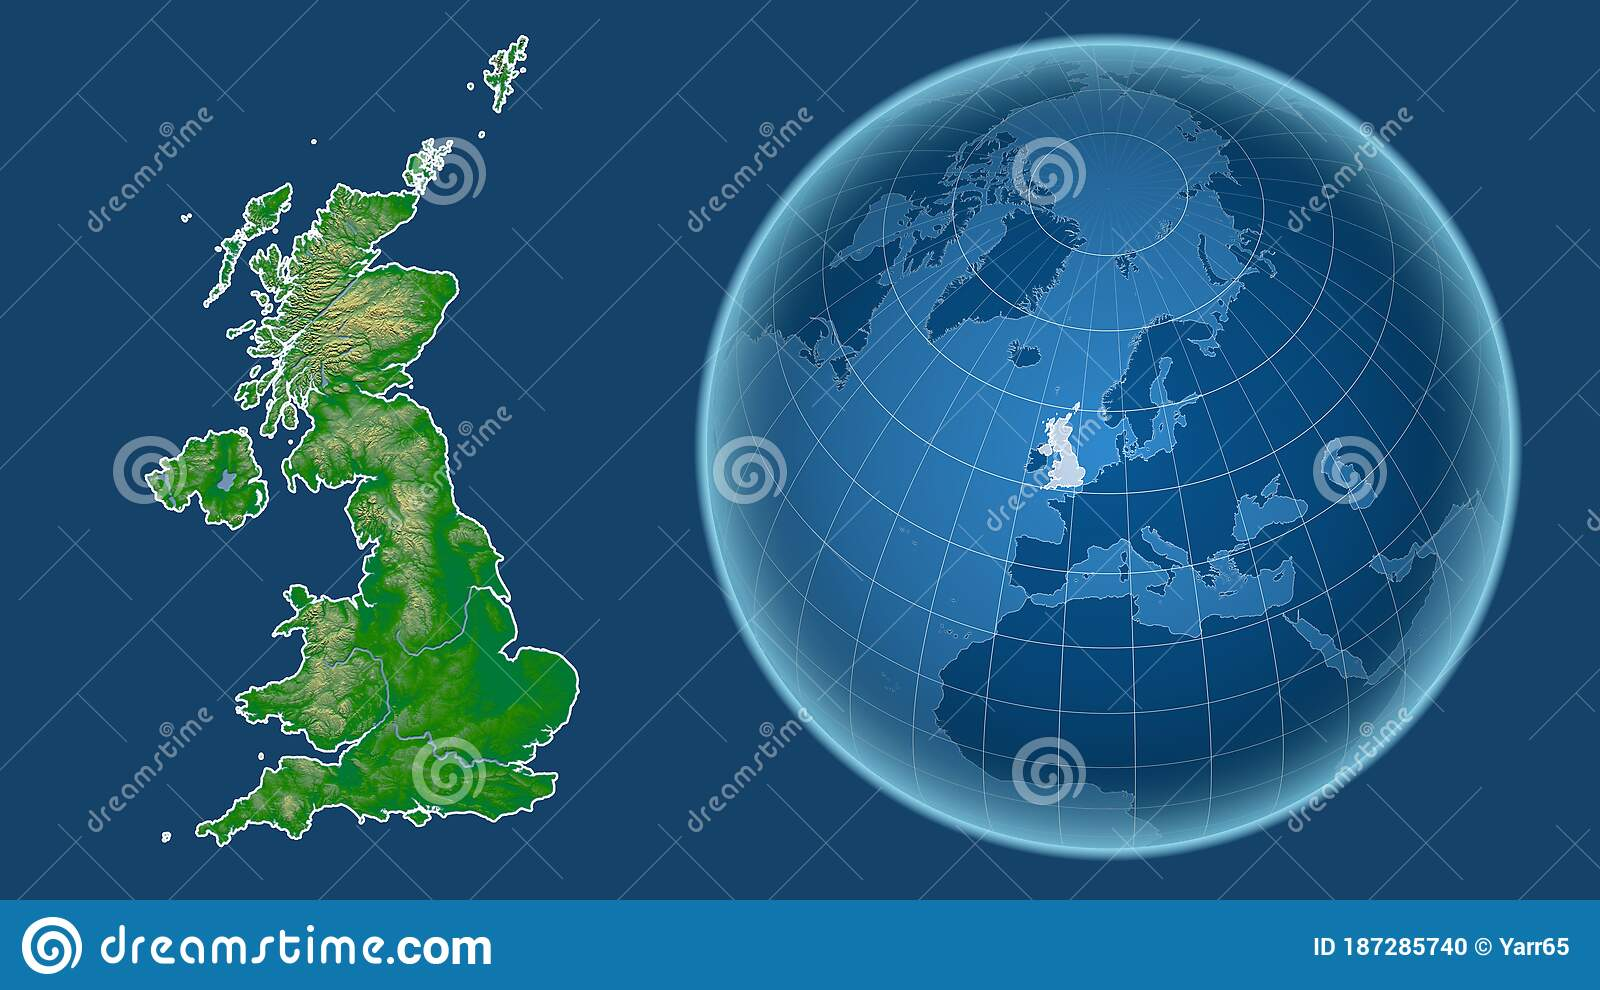 Picture of: United Kingdom Physical Country And Globe Isolated Stock Illustration Illustration Of Global Atlas 187285740